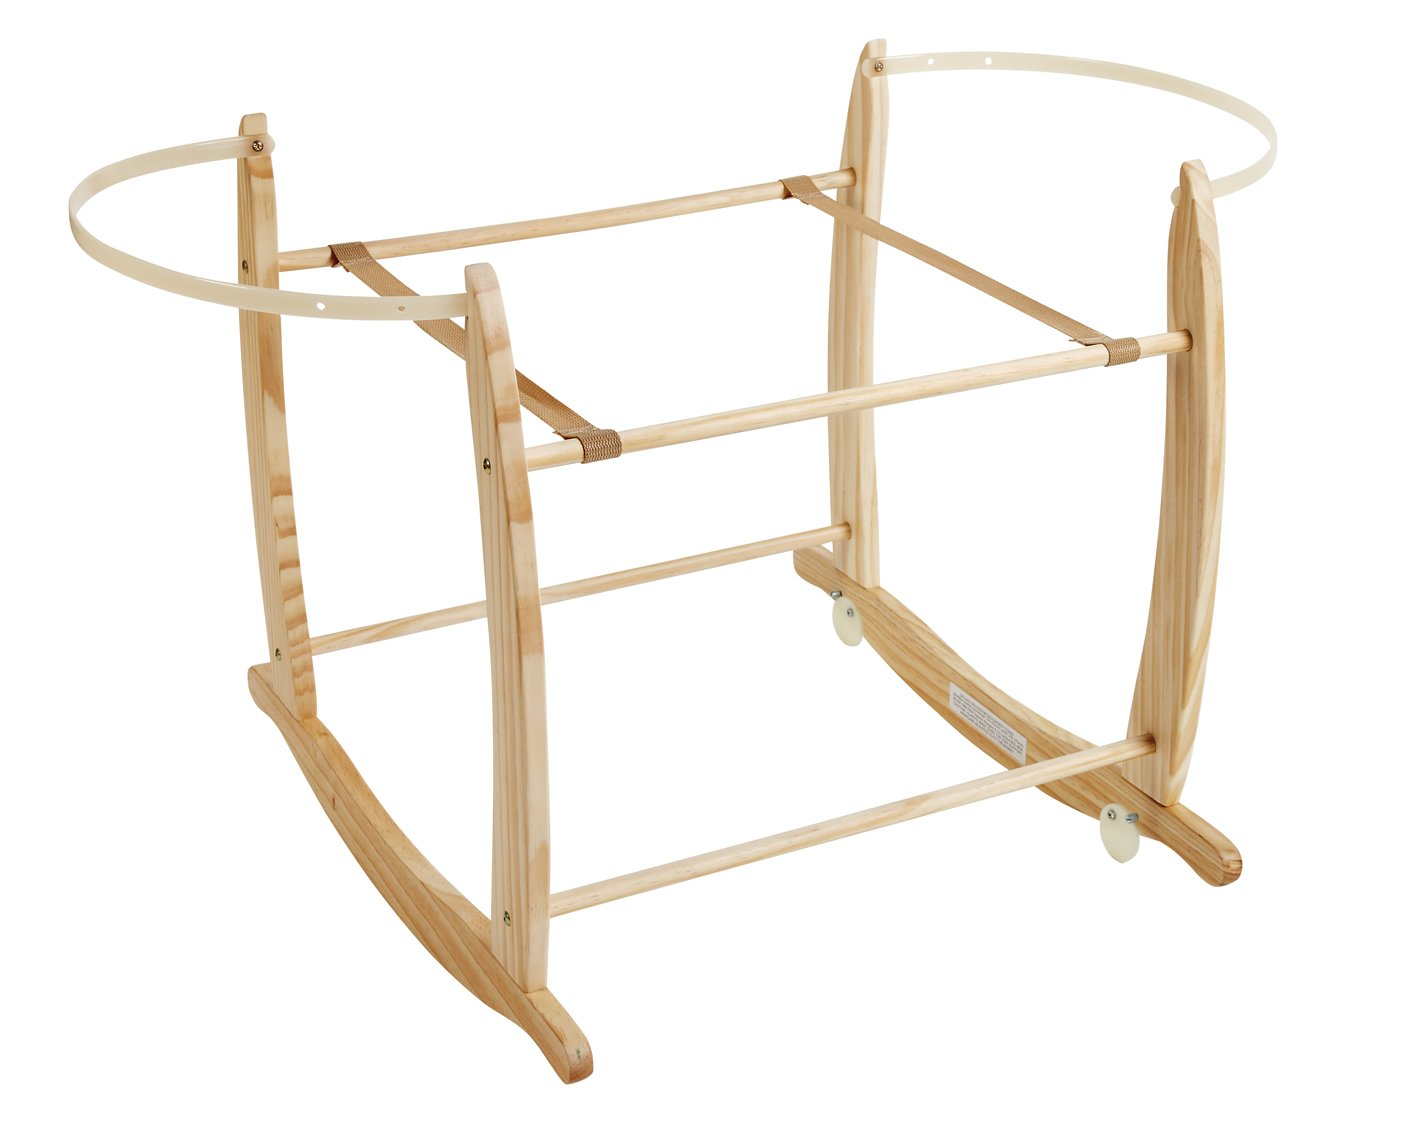 Clair de Lune Deluxe Rocking Moses Basket Stand (Natural)  A sturdy pine Moses basket stand rocks gently side to side to help soothe your baby to sleep. Adjustable plastic retaining bars ensure that your basket is securely held in place. Comes complete with stoppers so the basket can be locked into a stationary position. 1